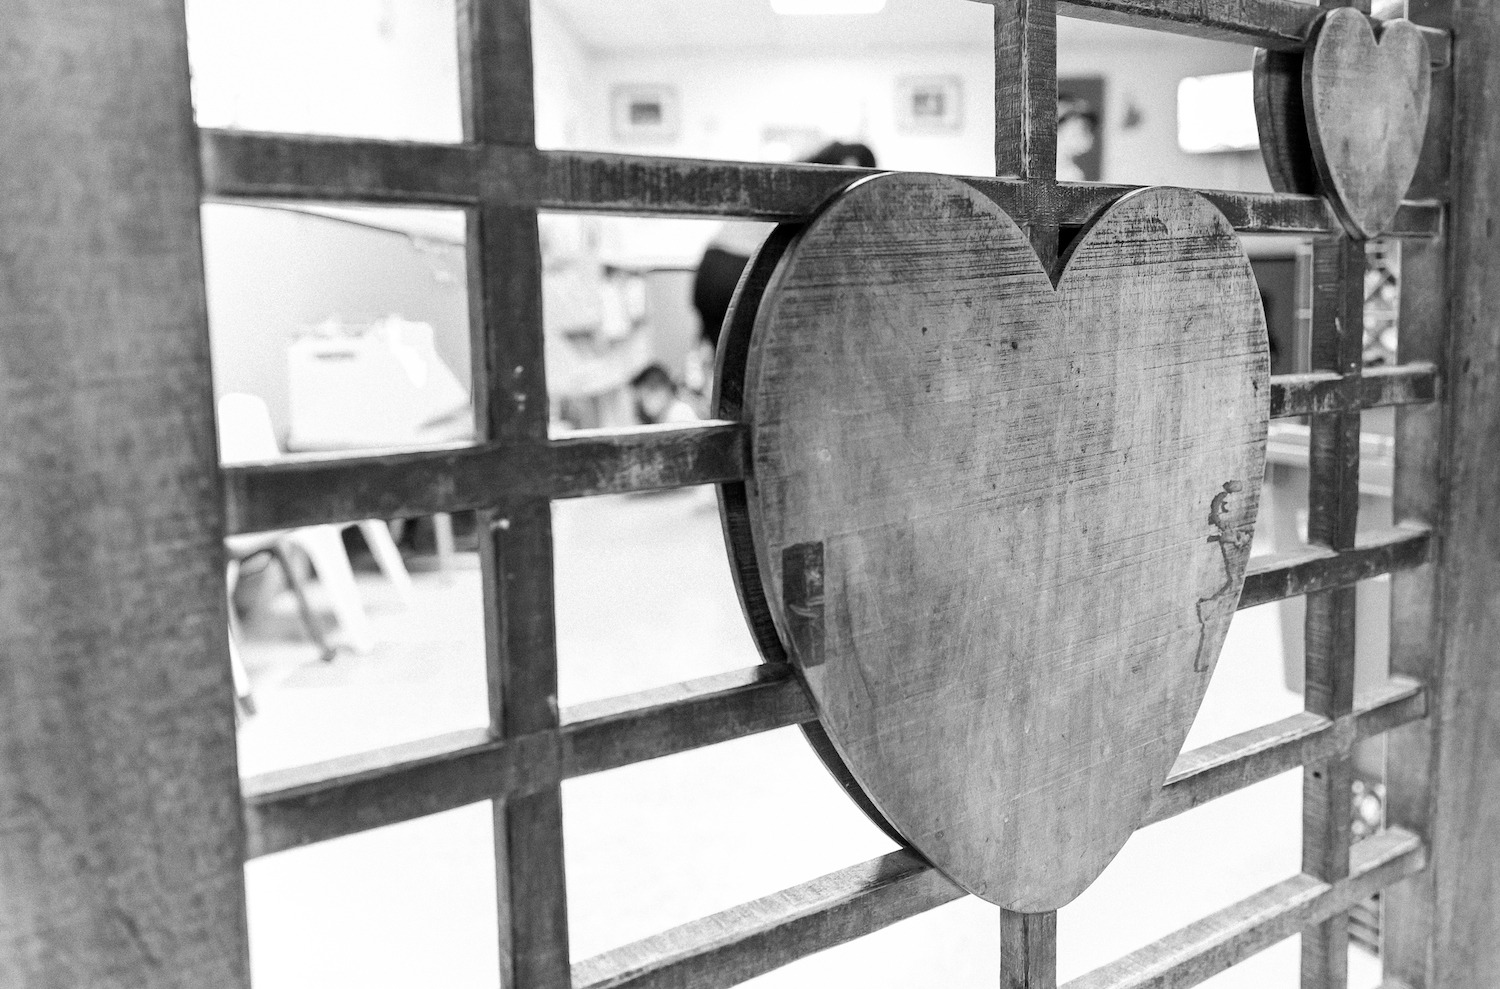 Black and White Heart on Child Center Window